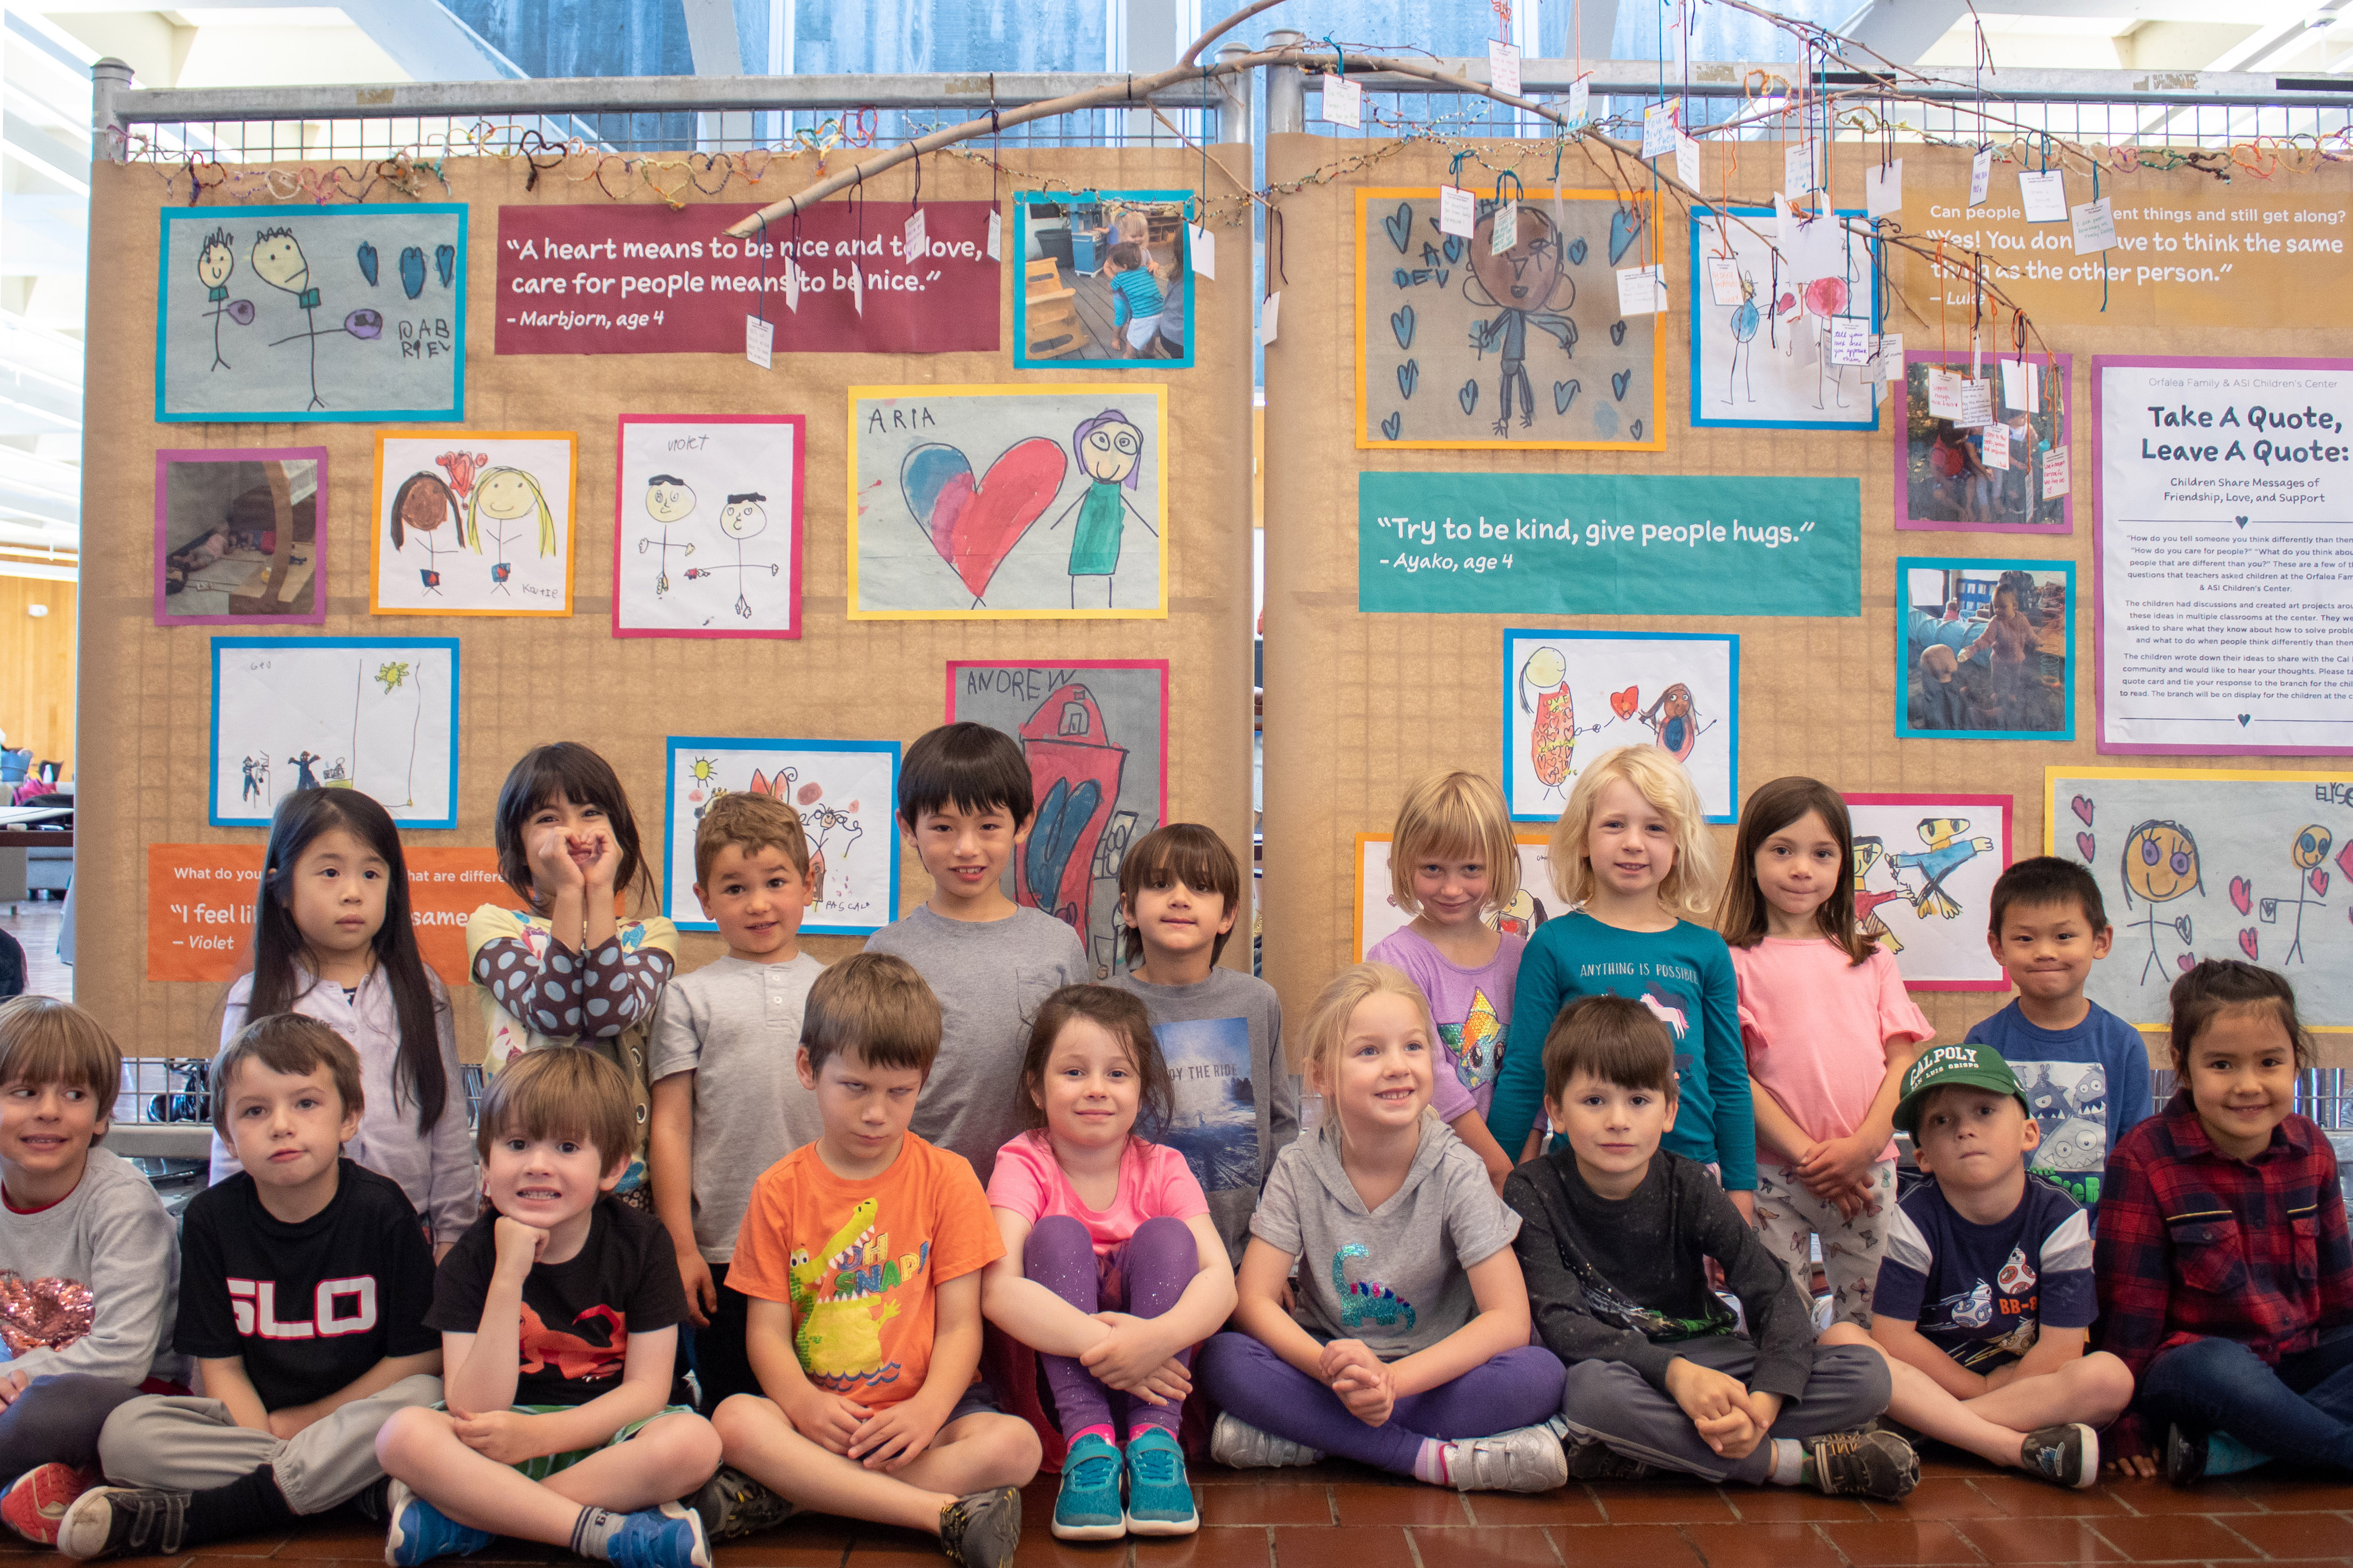 A group of children sit smiling in front of their display featuring art they drew in the University Union